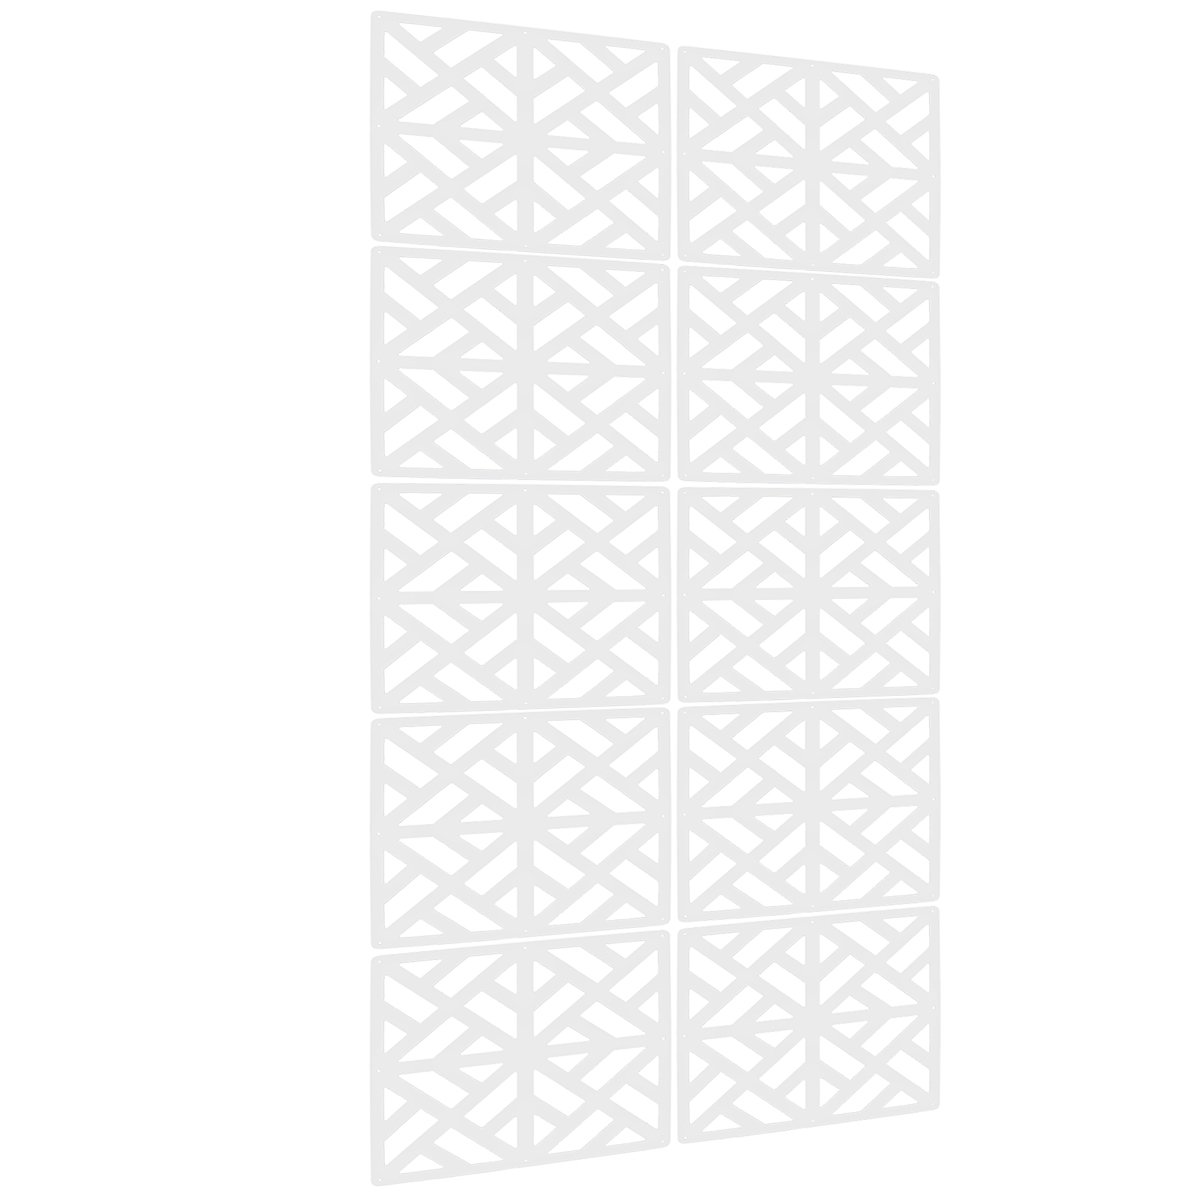 Lchen Hanging Room Divider, 0.2'' T White Wood-plastic Panel Screen for Decorating Beding, Dining, Study and Sitting-room, Hotel, Bar and School(SG,15.3''X15.3'')